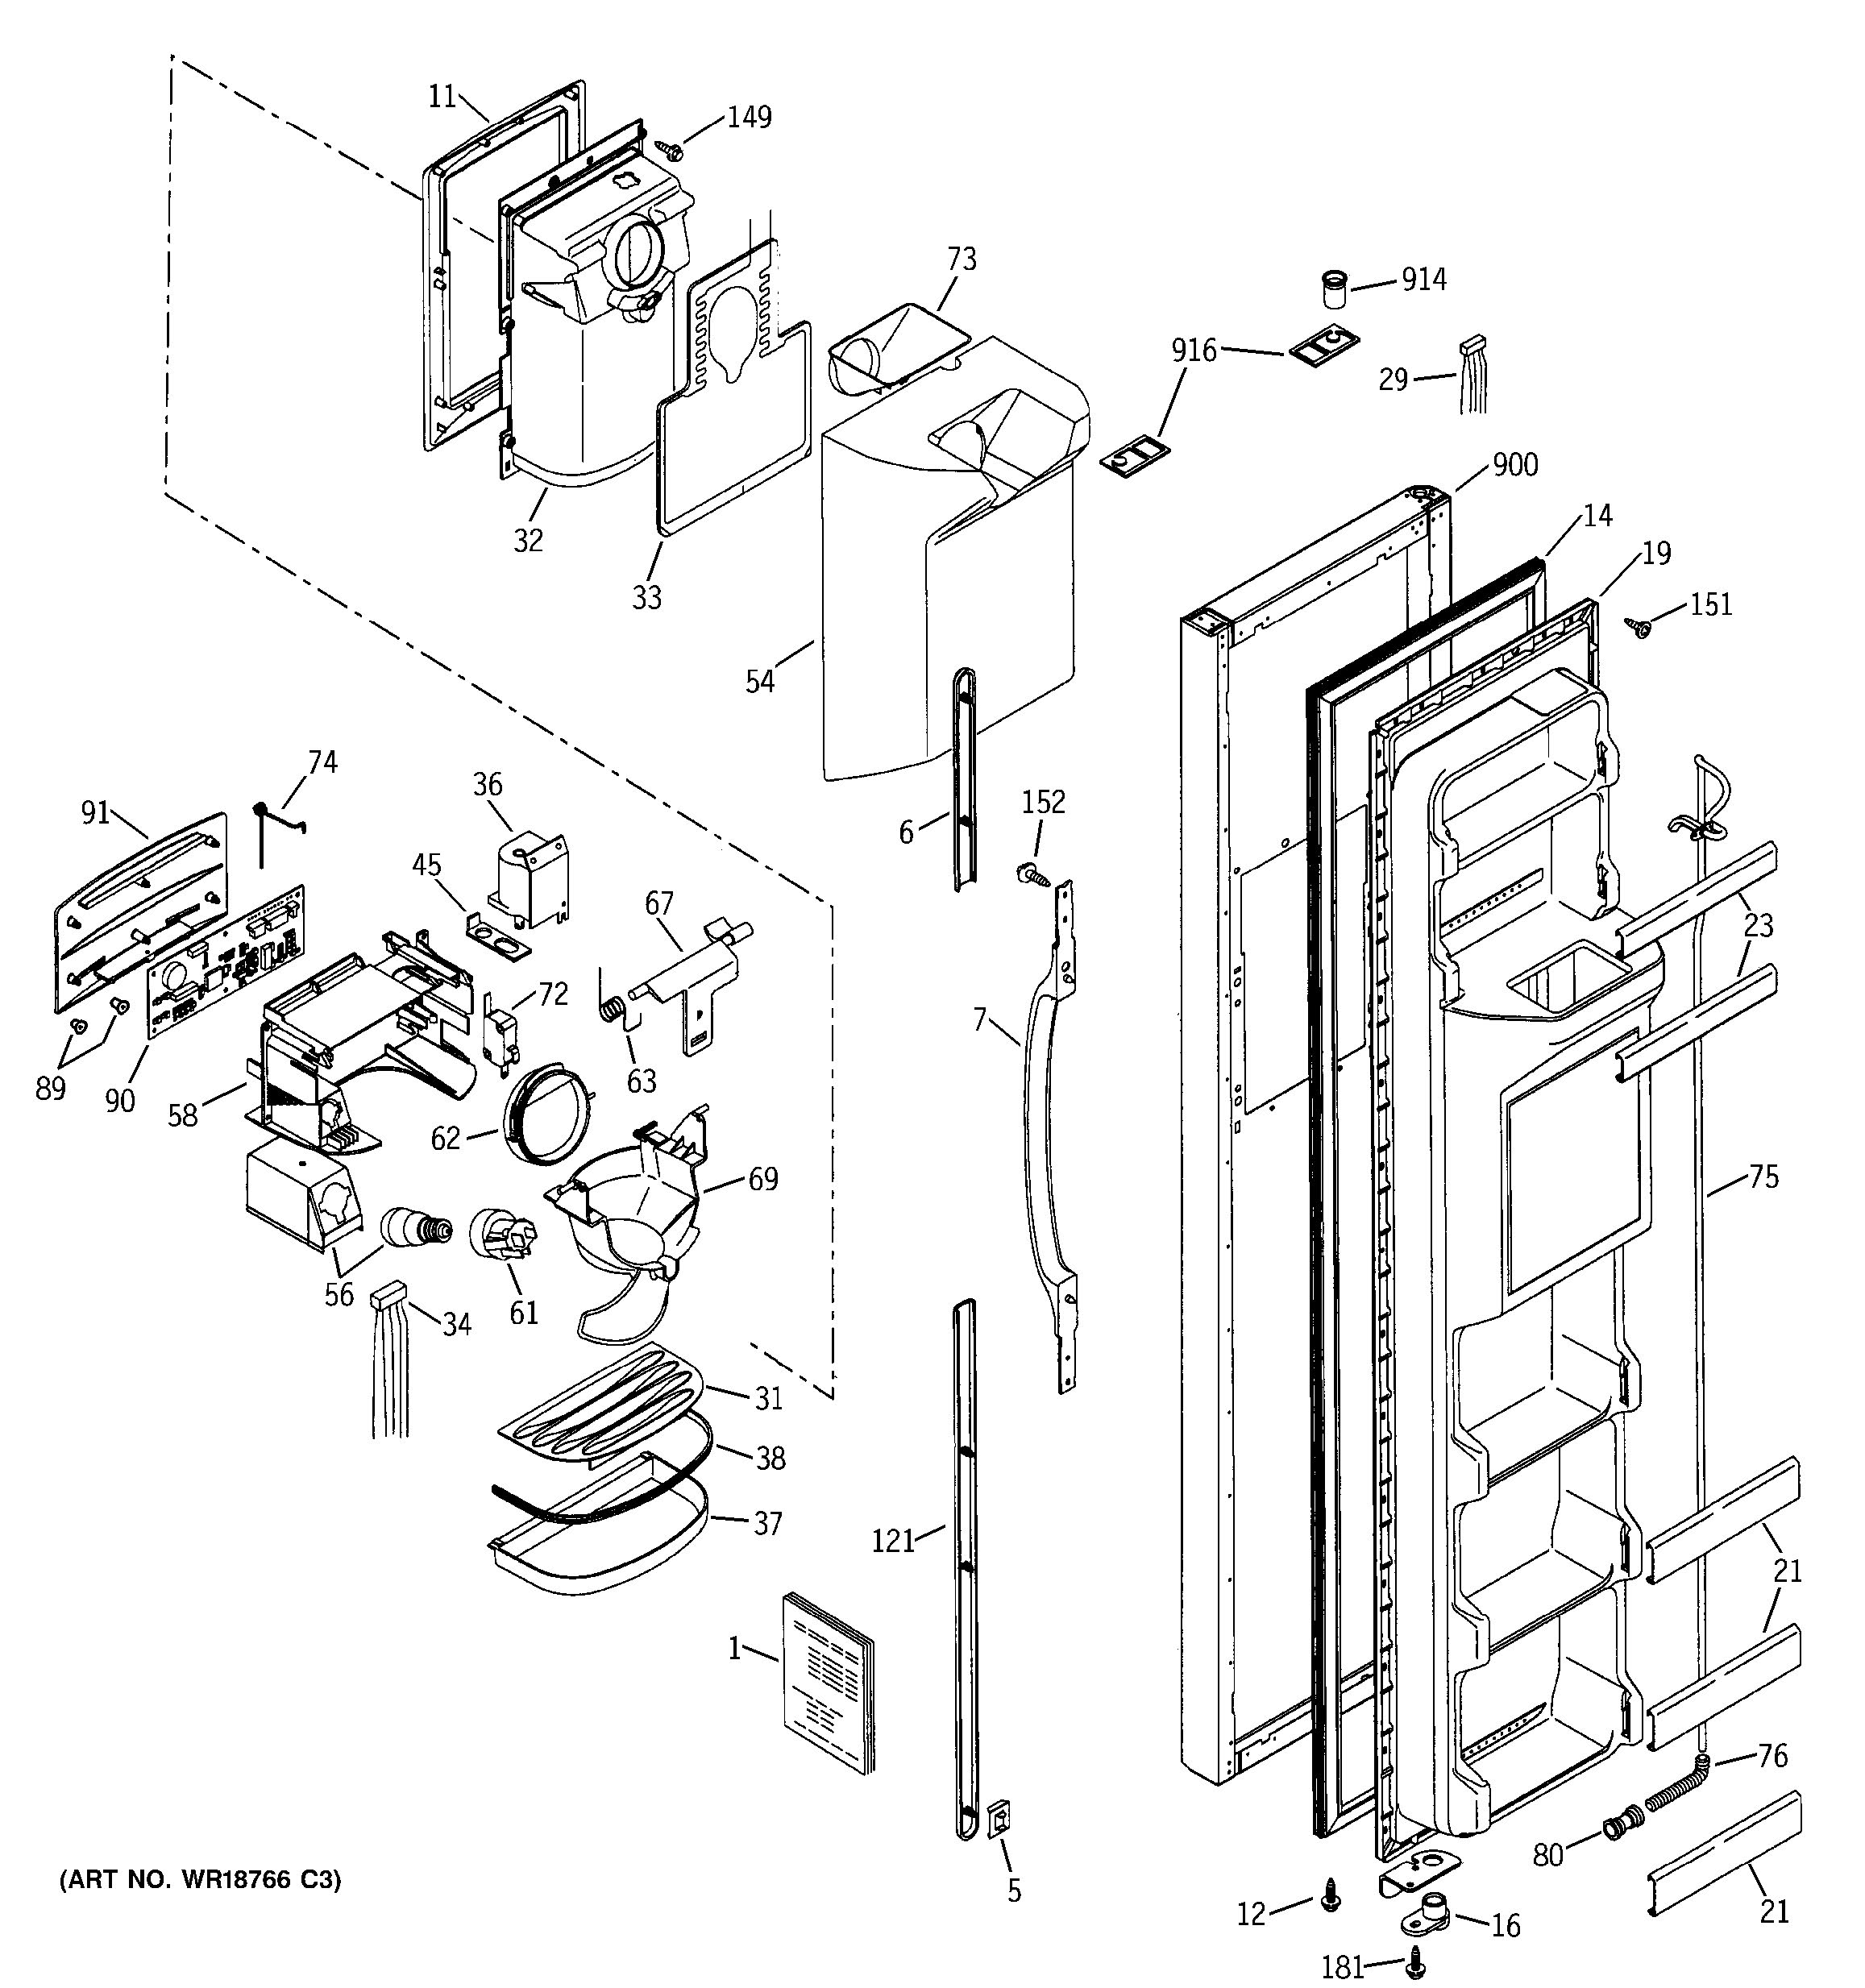 Assembly View For Freezer Door